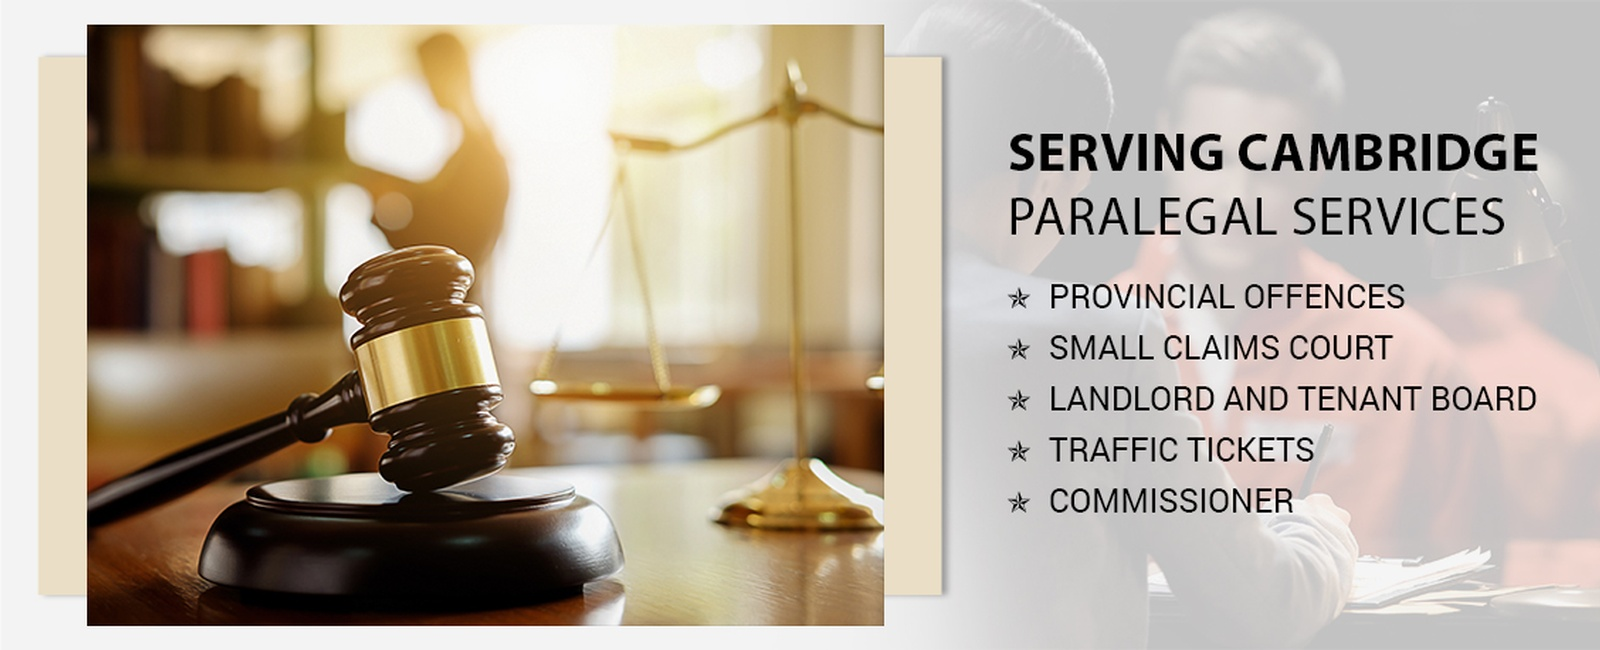 Paralegal services in Cambridge